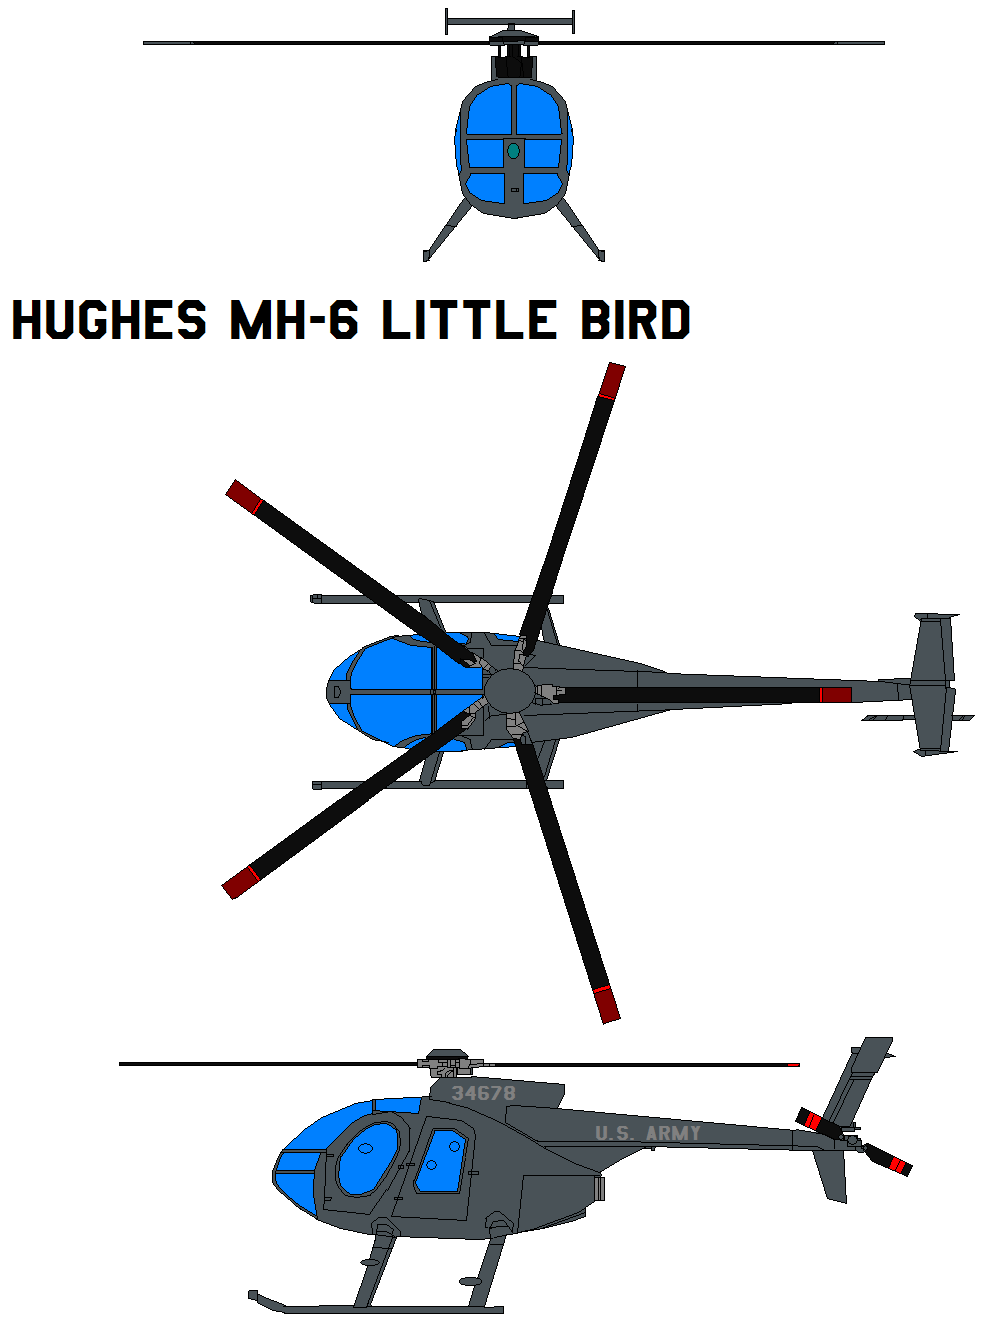 single rotor helicopter with Hughes Mh 6 Little Bird 102971708 on Helicopter drawings additionally 03468 moreover Black shark moreover Sikorsky H 34 Choctaw Seabat Seahorse together with 500.